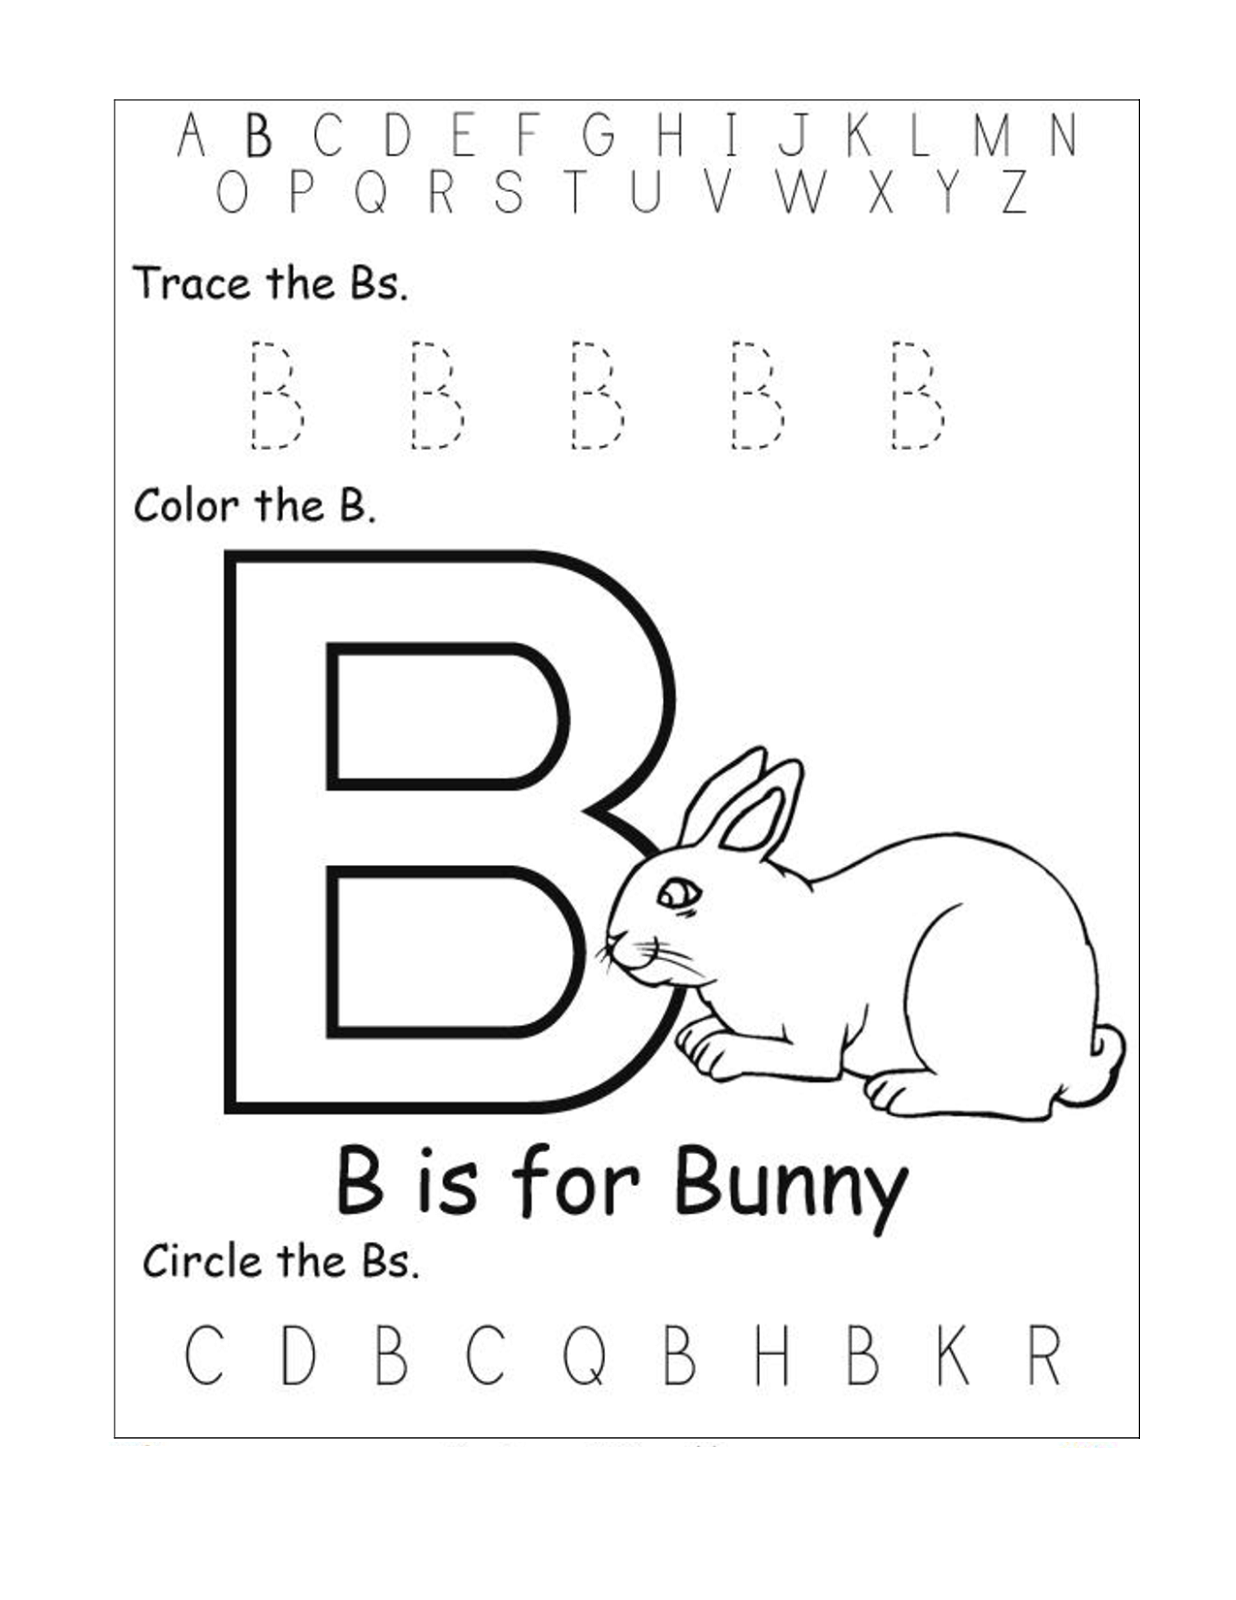 Kindergarten Alphabet Worksheets To Print Activity Shelter Kindergarten Best Free Printable